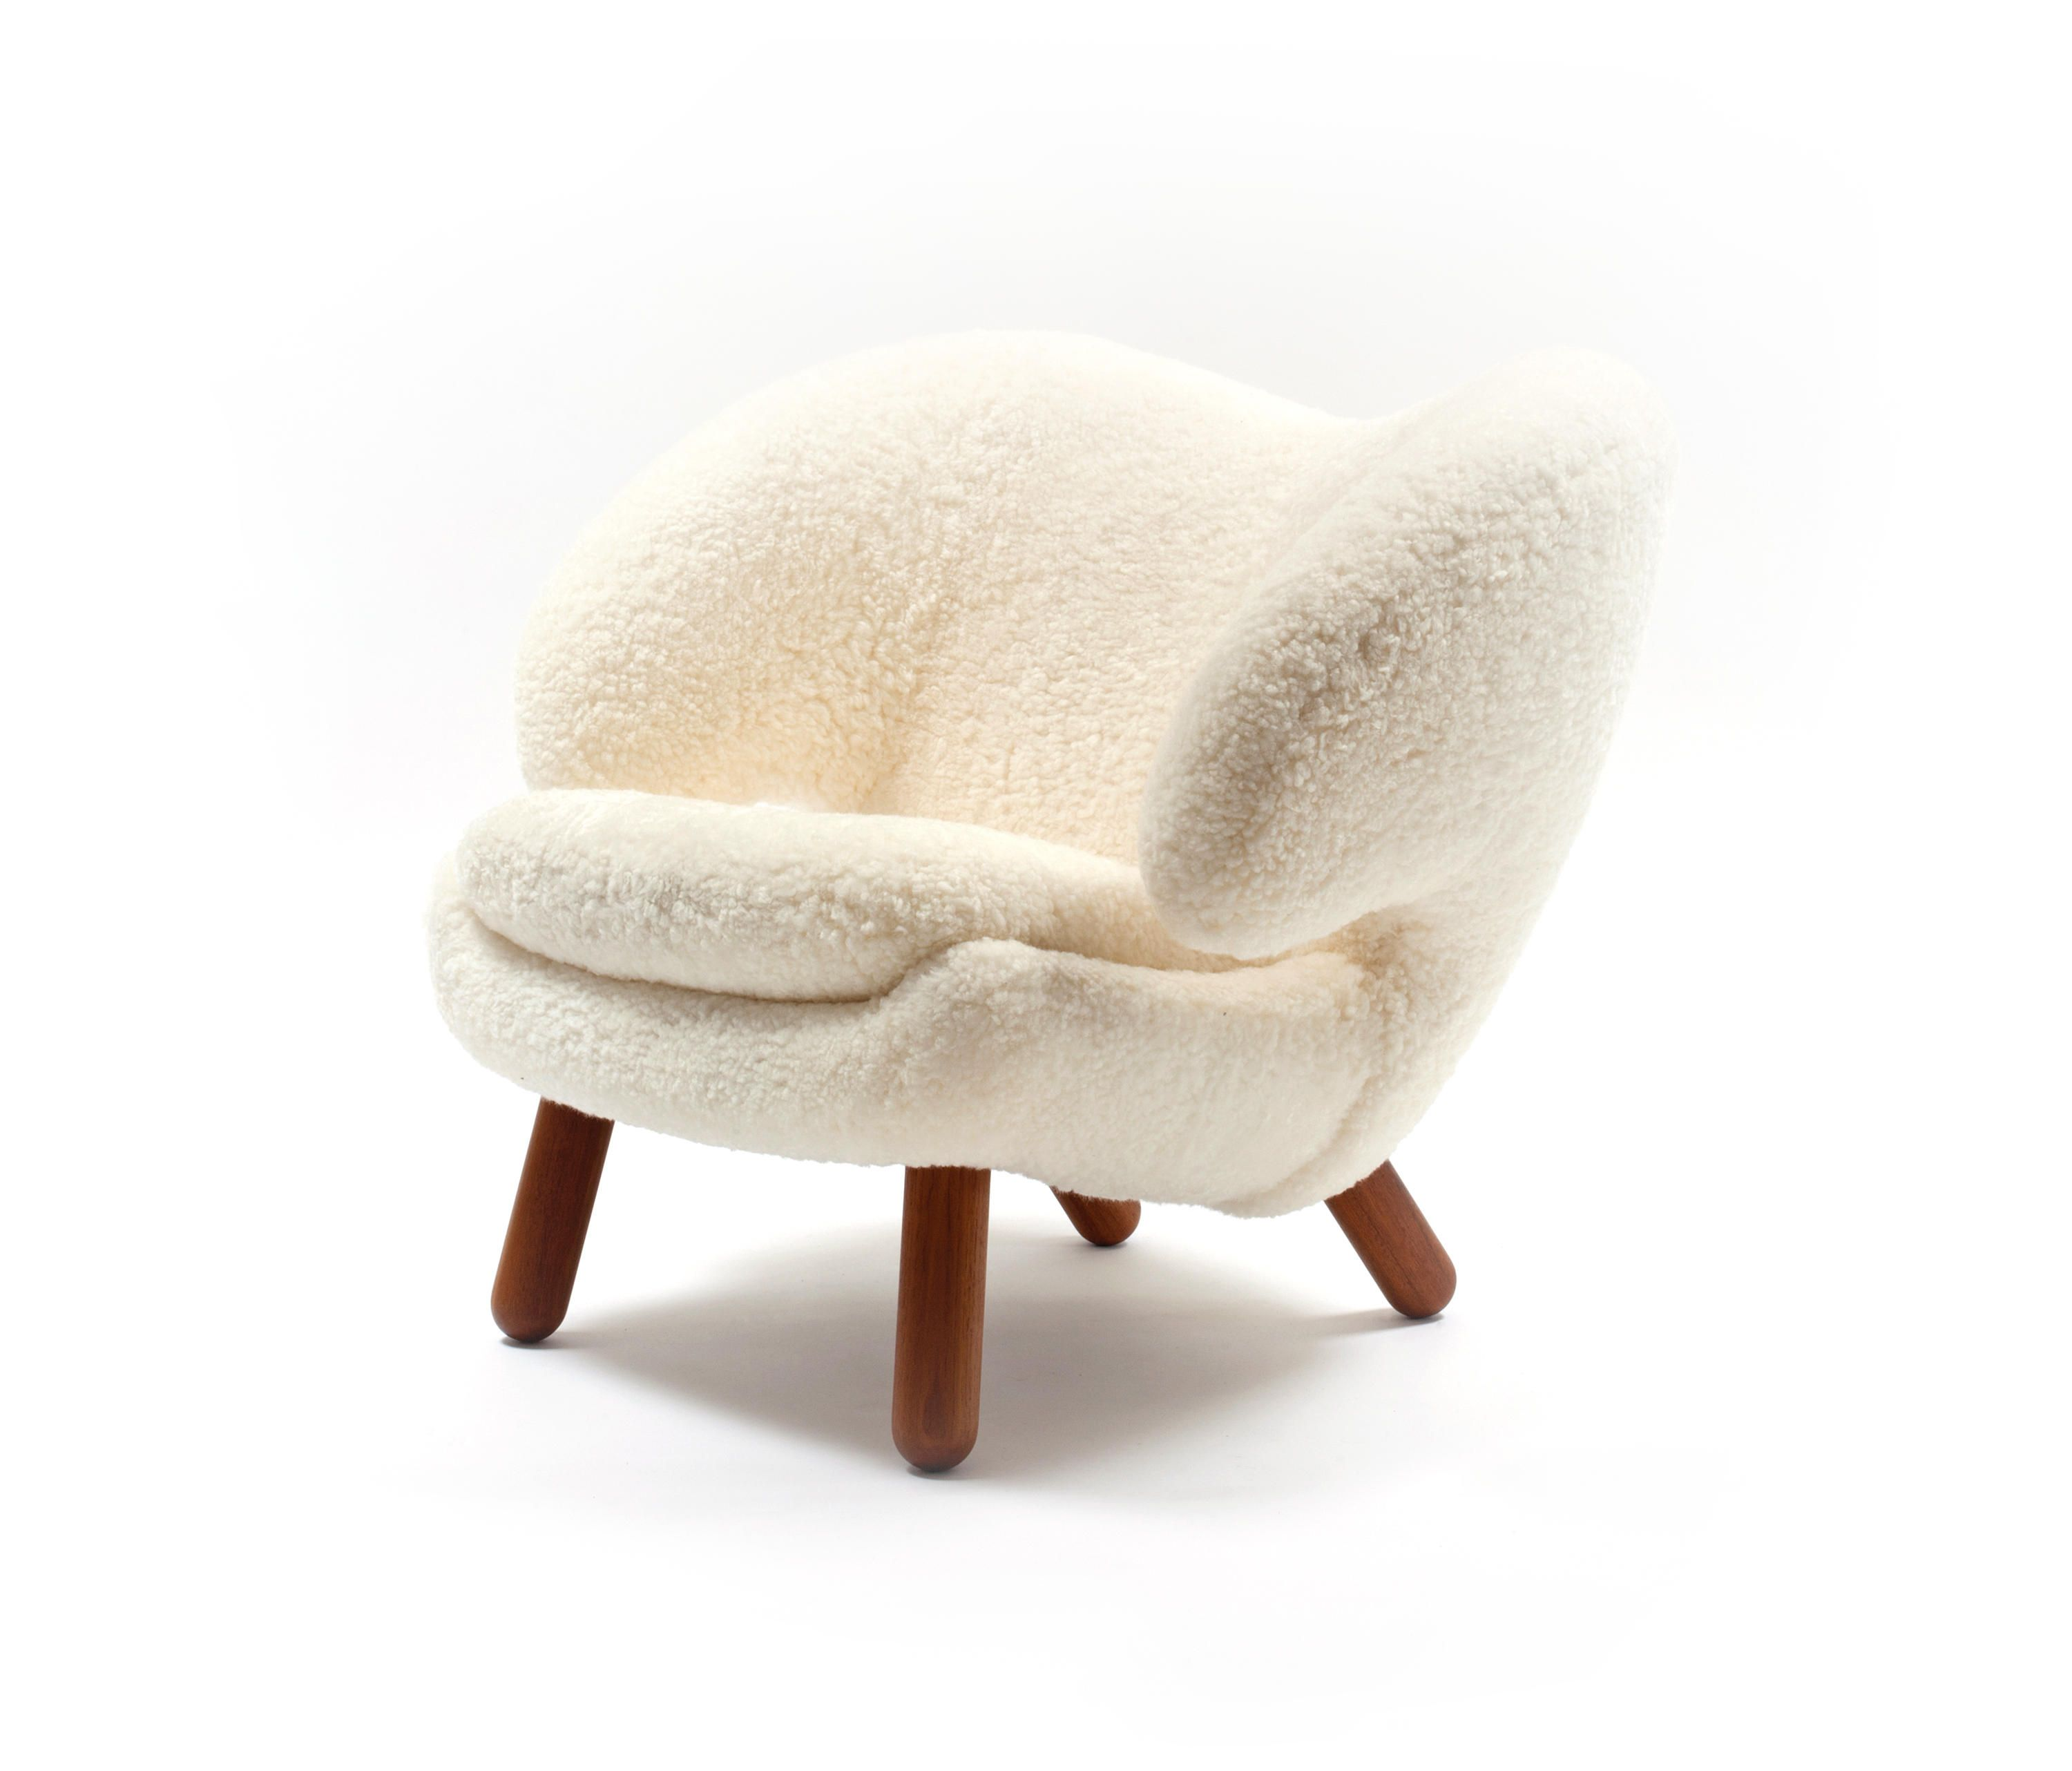 Pelican Chair Armchairs From House Of Finn Juhl Onecollection Architonic Comfy Chairs Chairs Armchairs Chair